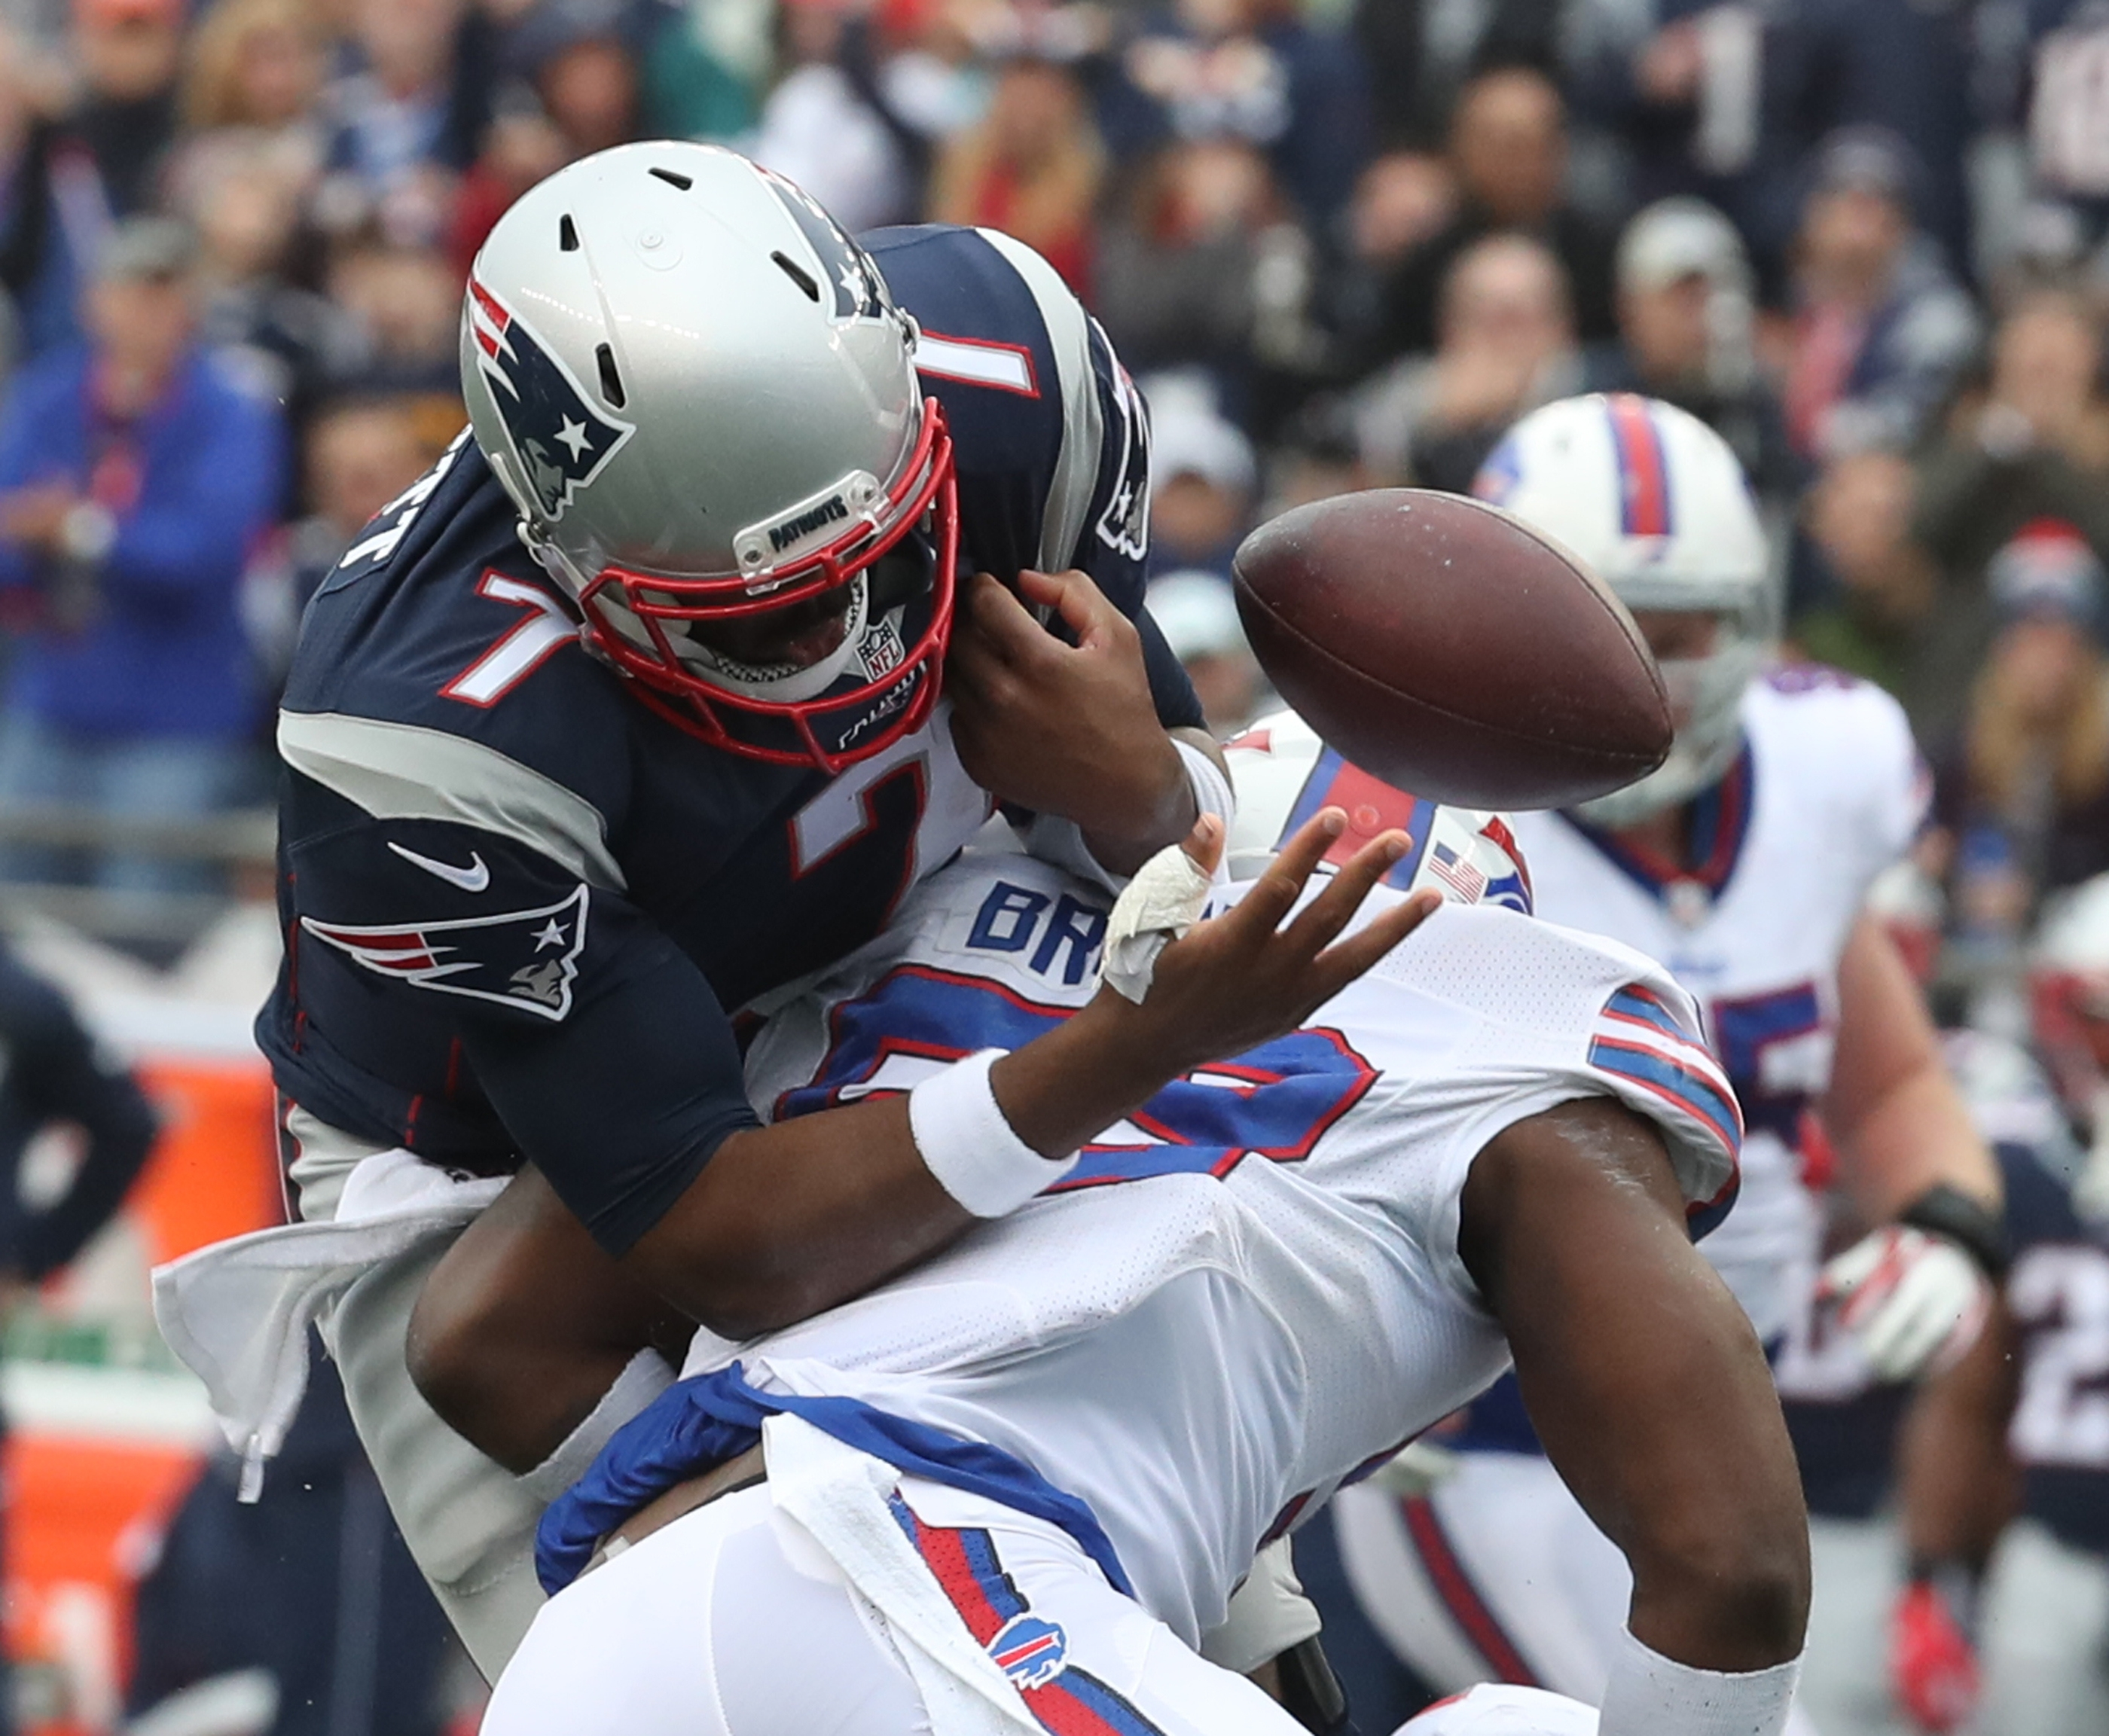 Zach Brown has made big plays all season in the middle of the Buffalo Bills' defense, including this forced fumble against the Patriots, and his health will be a major topic Sunday against the 49ers. (James P. McCoy/Buffalo News)